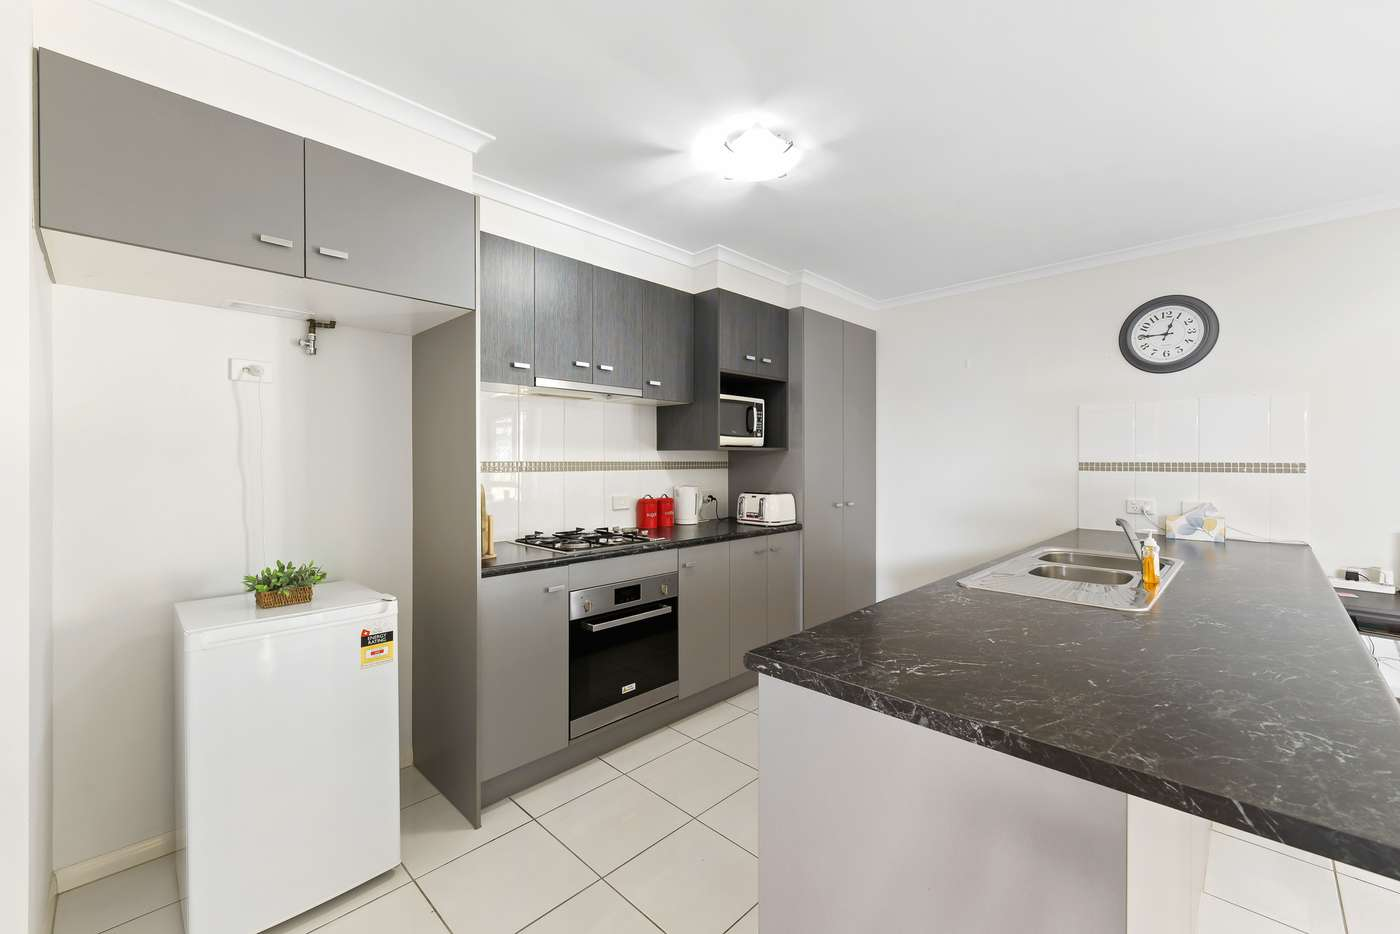 Fifth view of Homely house listing, 6 Riverstone Crescent, Little Mountain QLD 4551